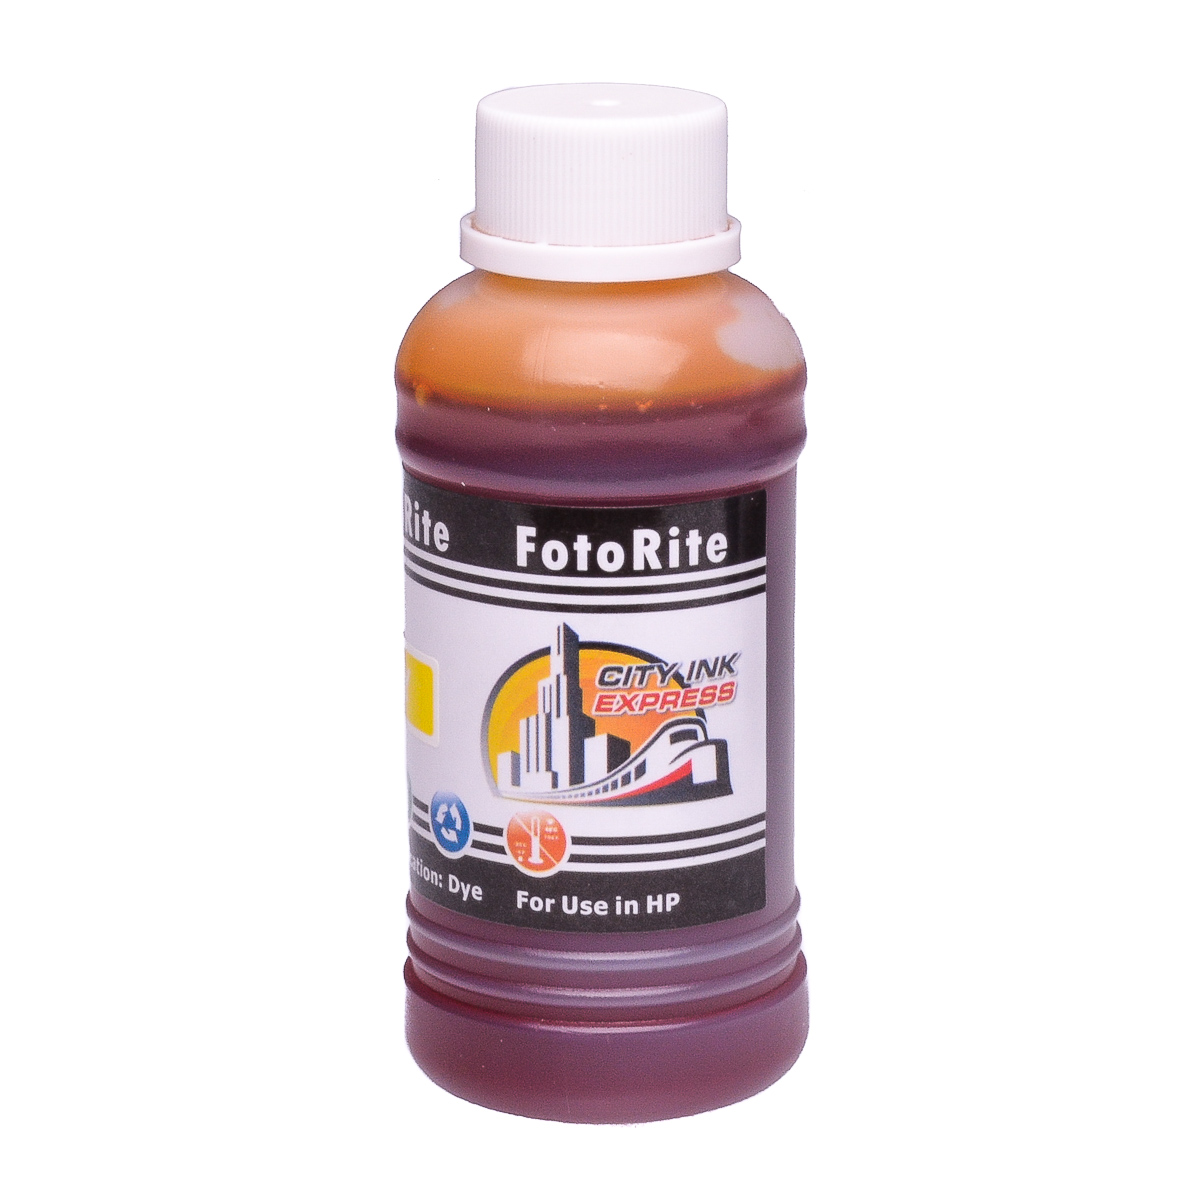 Cheap Yellow dye ink refill replaces HP Officejet Pro HP 88 - C9388AE